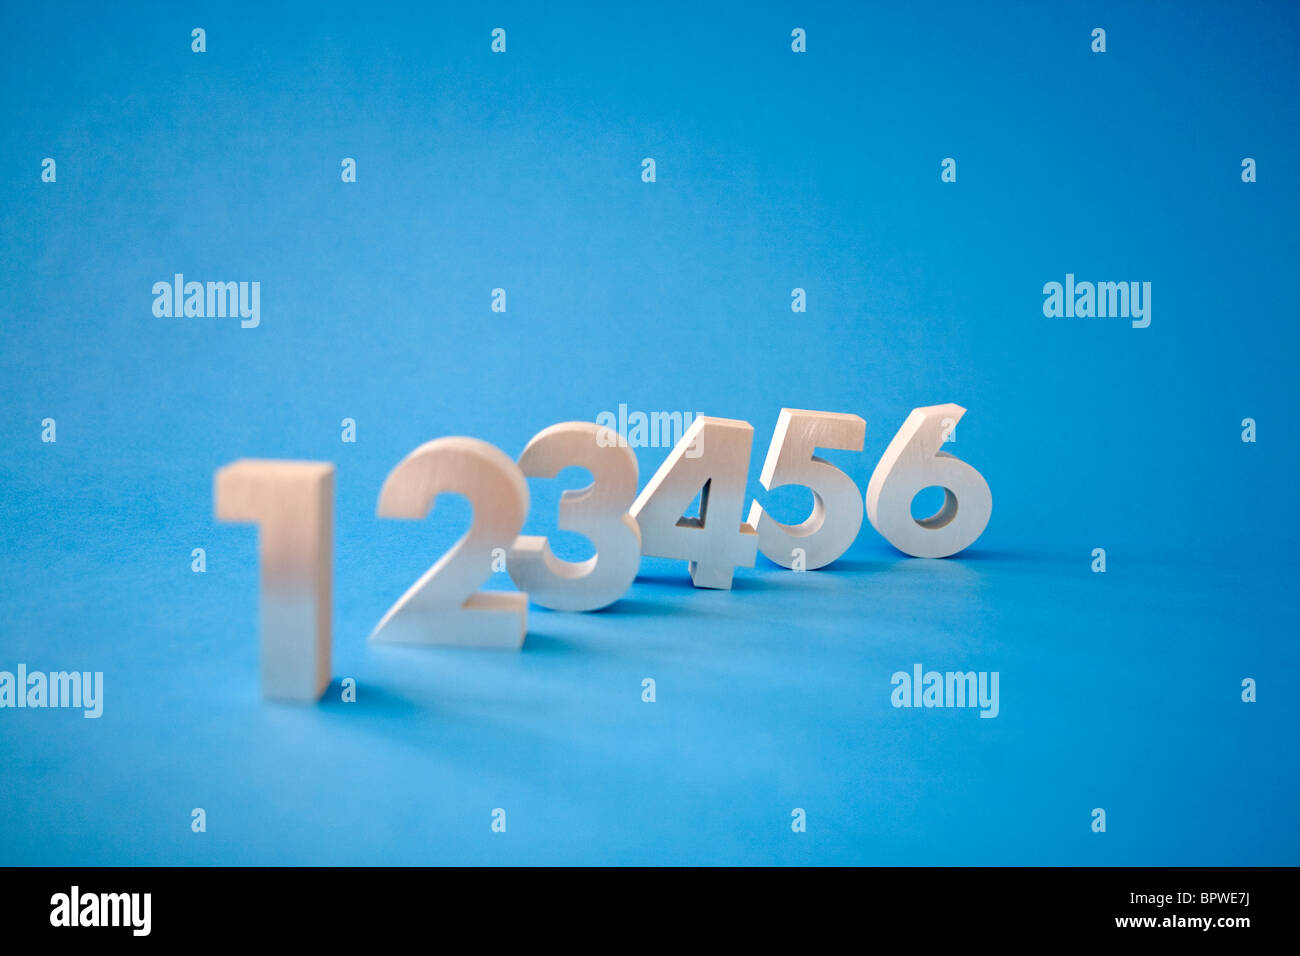 Sequence of numbers 1, 2, 3, 4, 5, 6, on blue background - Stock Image